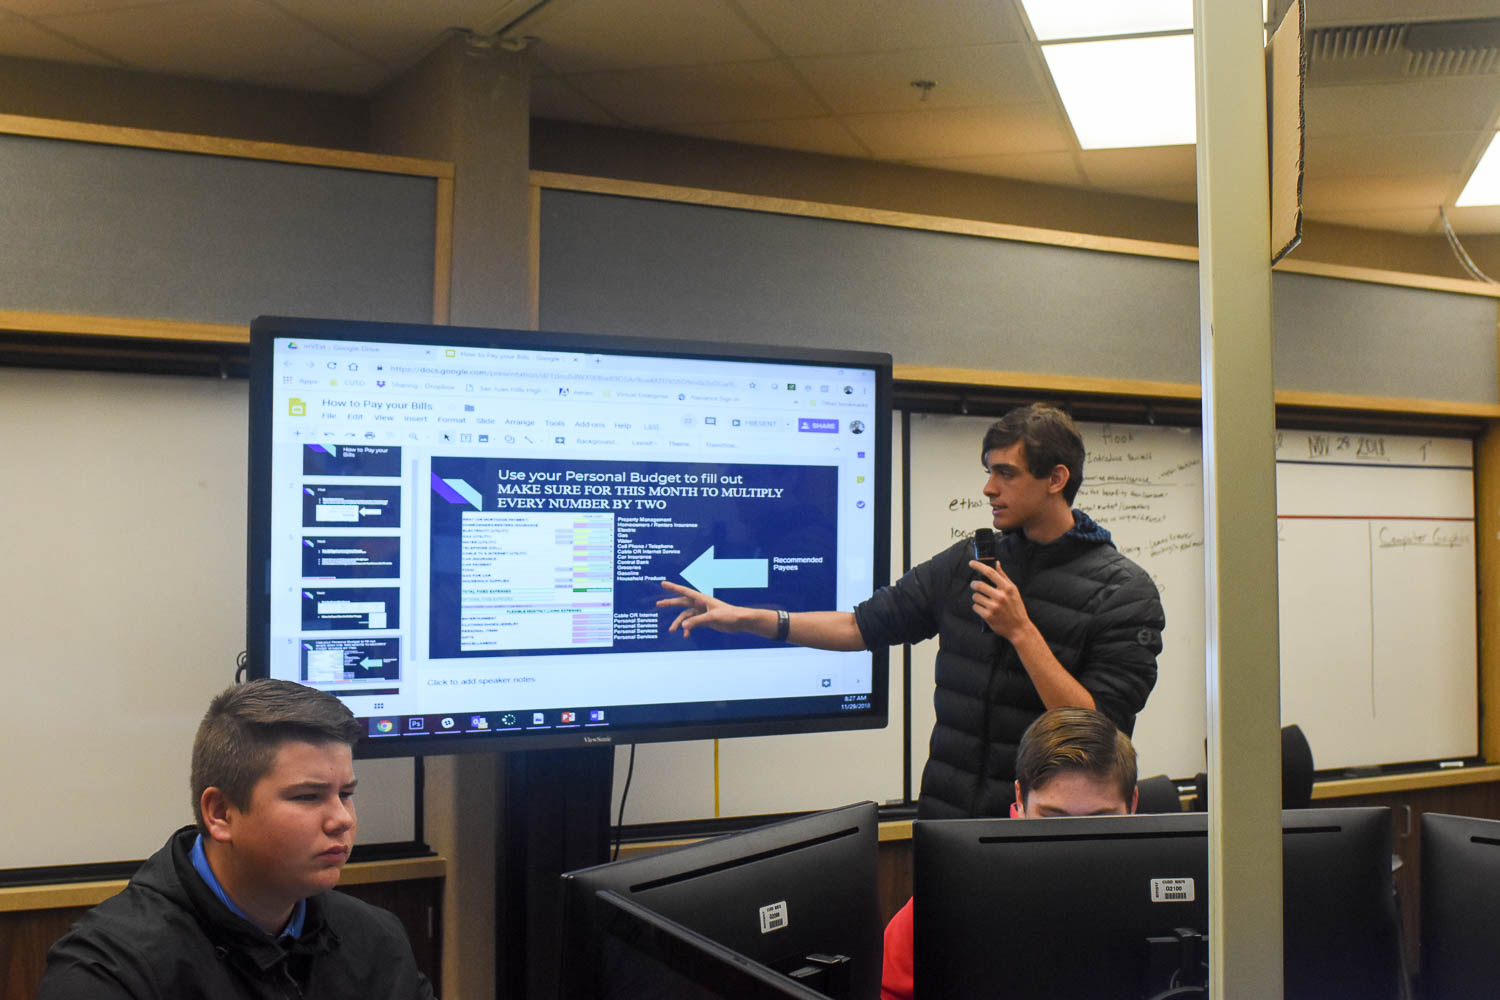 Jimmy Wale (11) conducts a presentation to the virtual enterprise class during second period on Thursday, November 29.